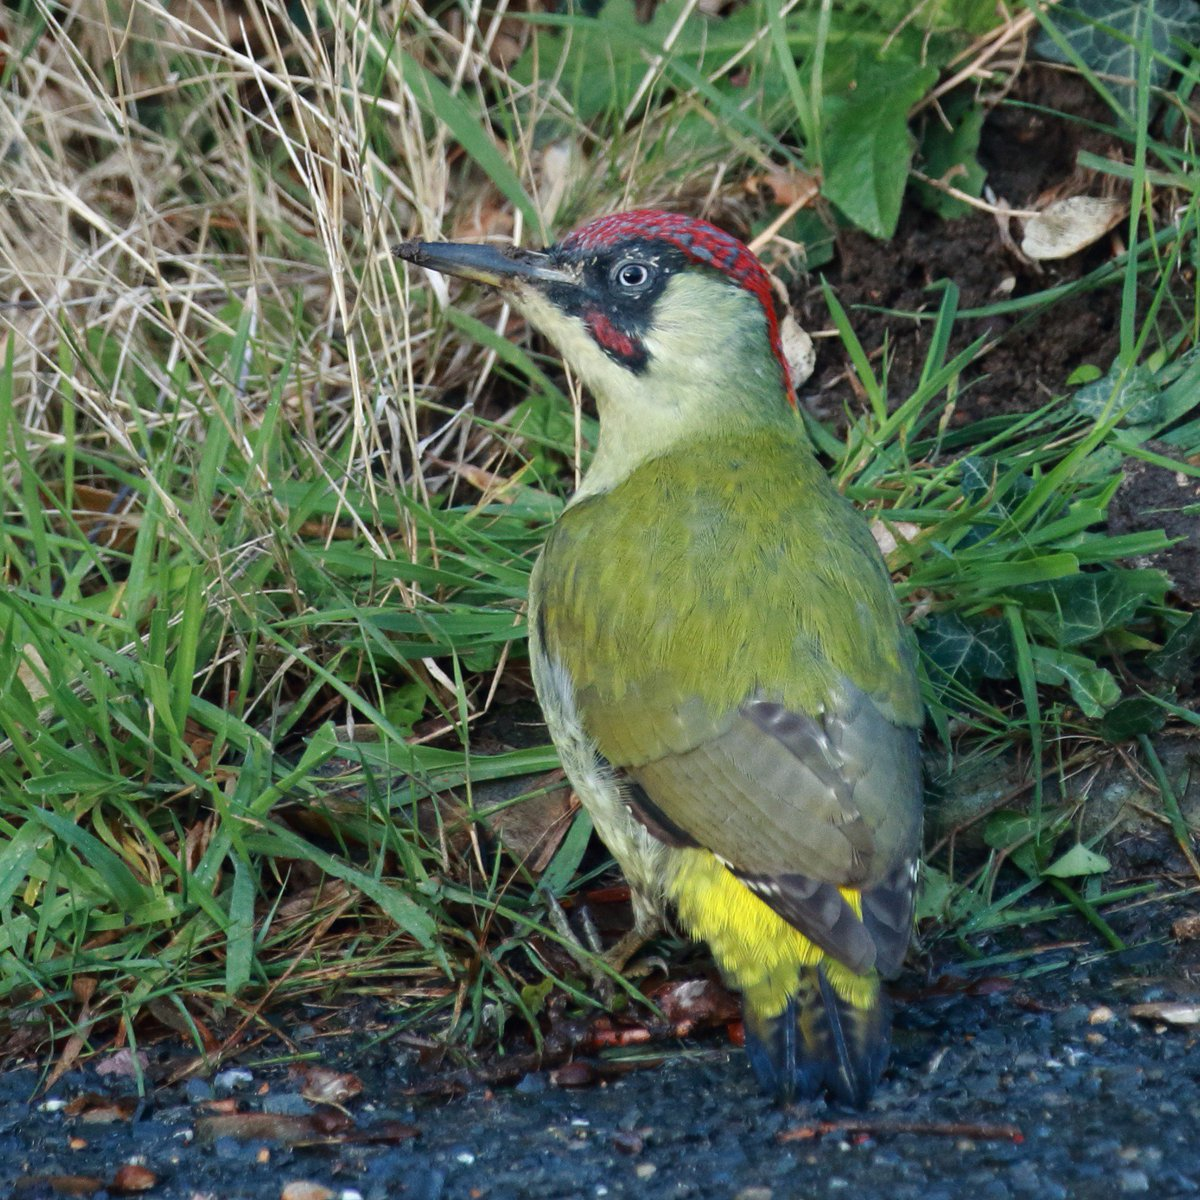 Spotted this #green #woodpecker rummaging in the undergrowth @BBCSpringwatch @Natures_Voice @RSPBbirders @WildlifeMag @SussexWildlife<br>http://pic.twitter.com/TRSM50naua